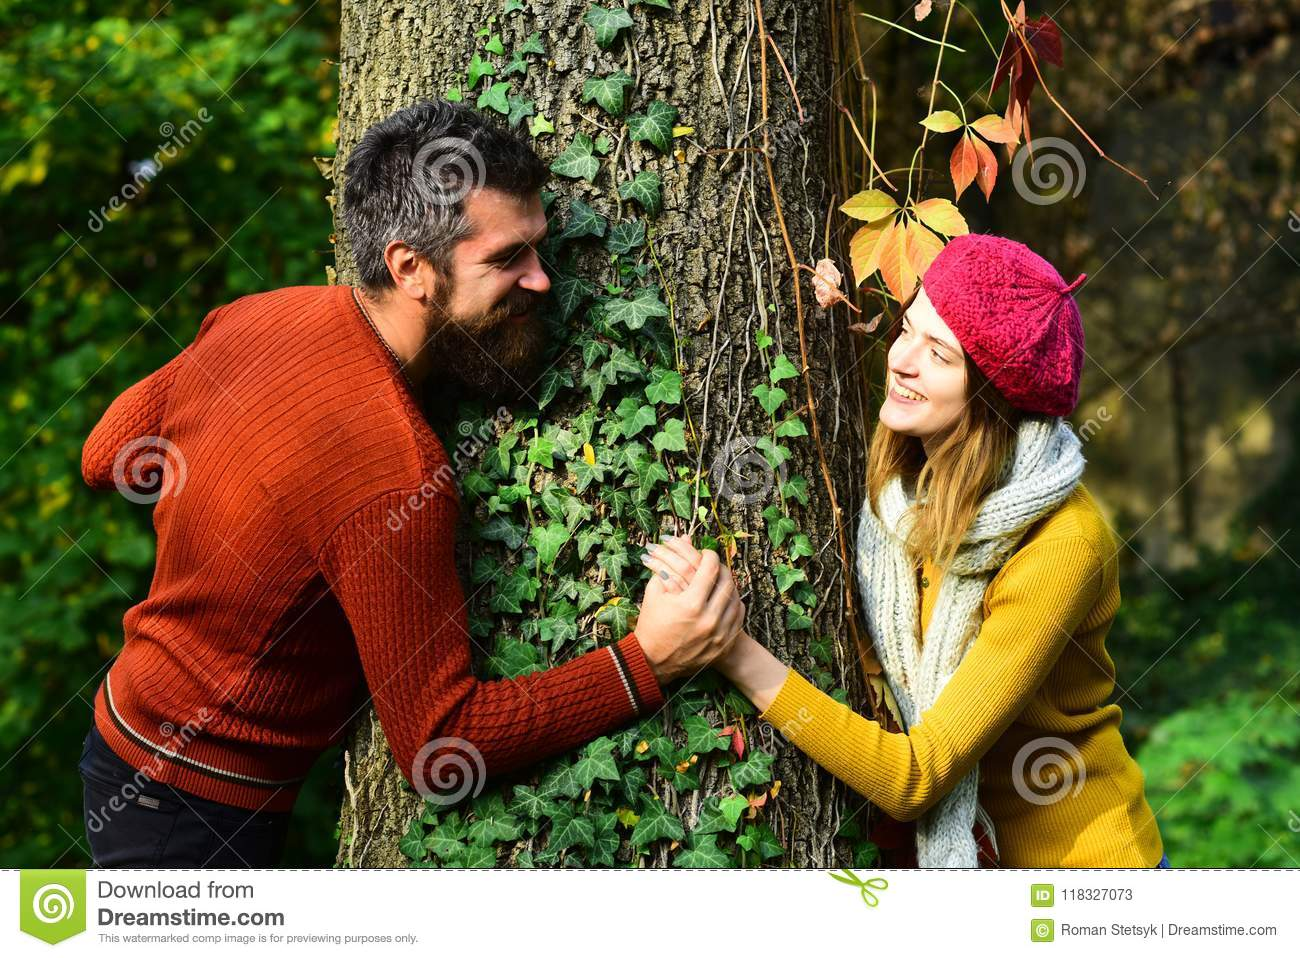 Nature lover dating